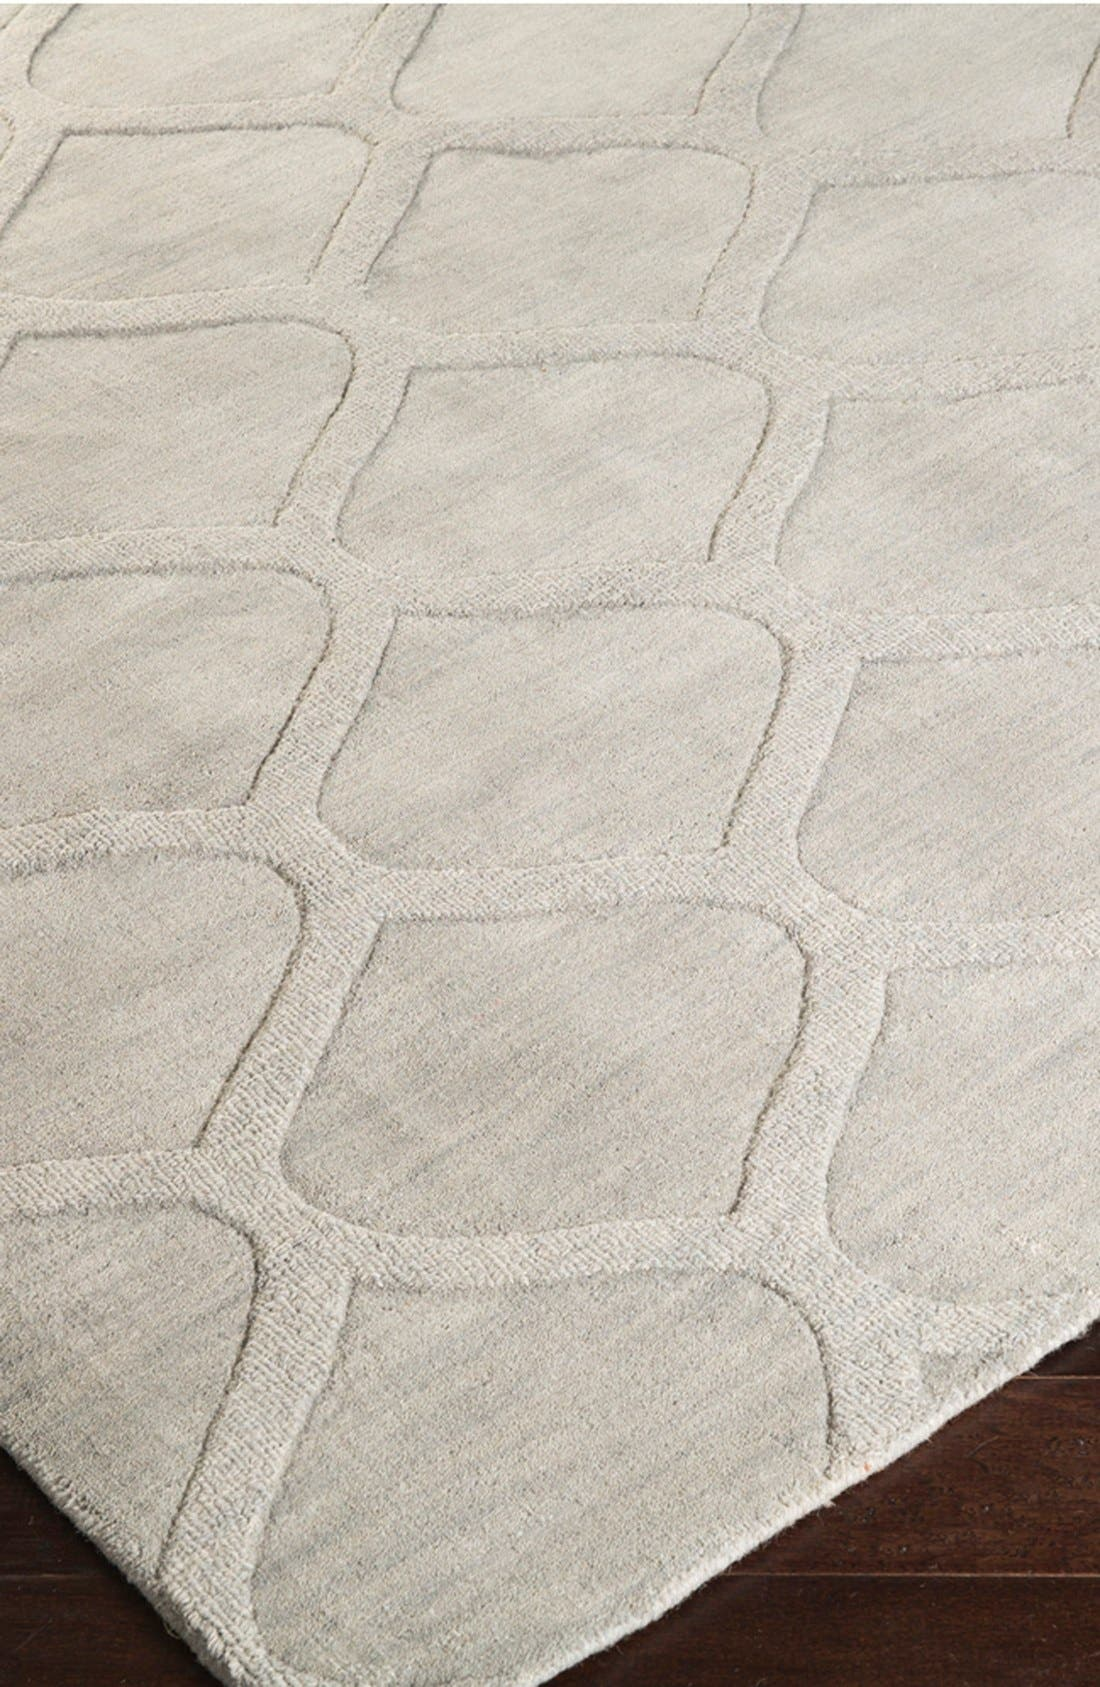 'Mystique' Hand Loomed Wool Rug,                             Alternate thumbnail 3, color,                             Grey